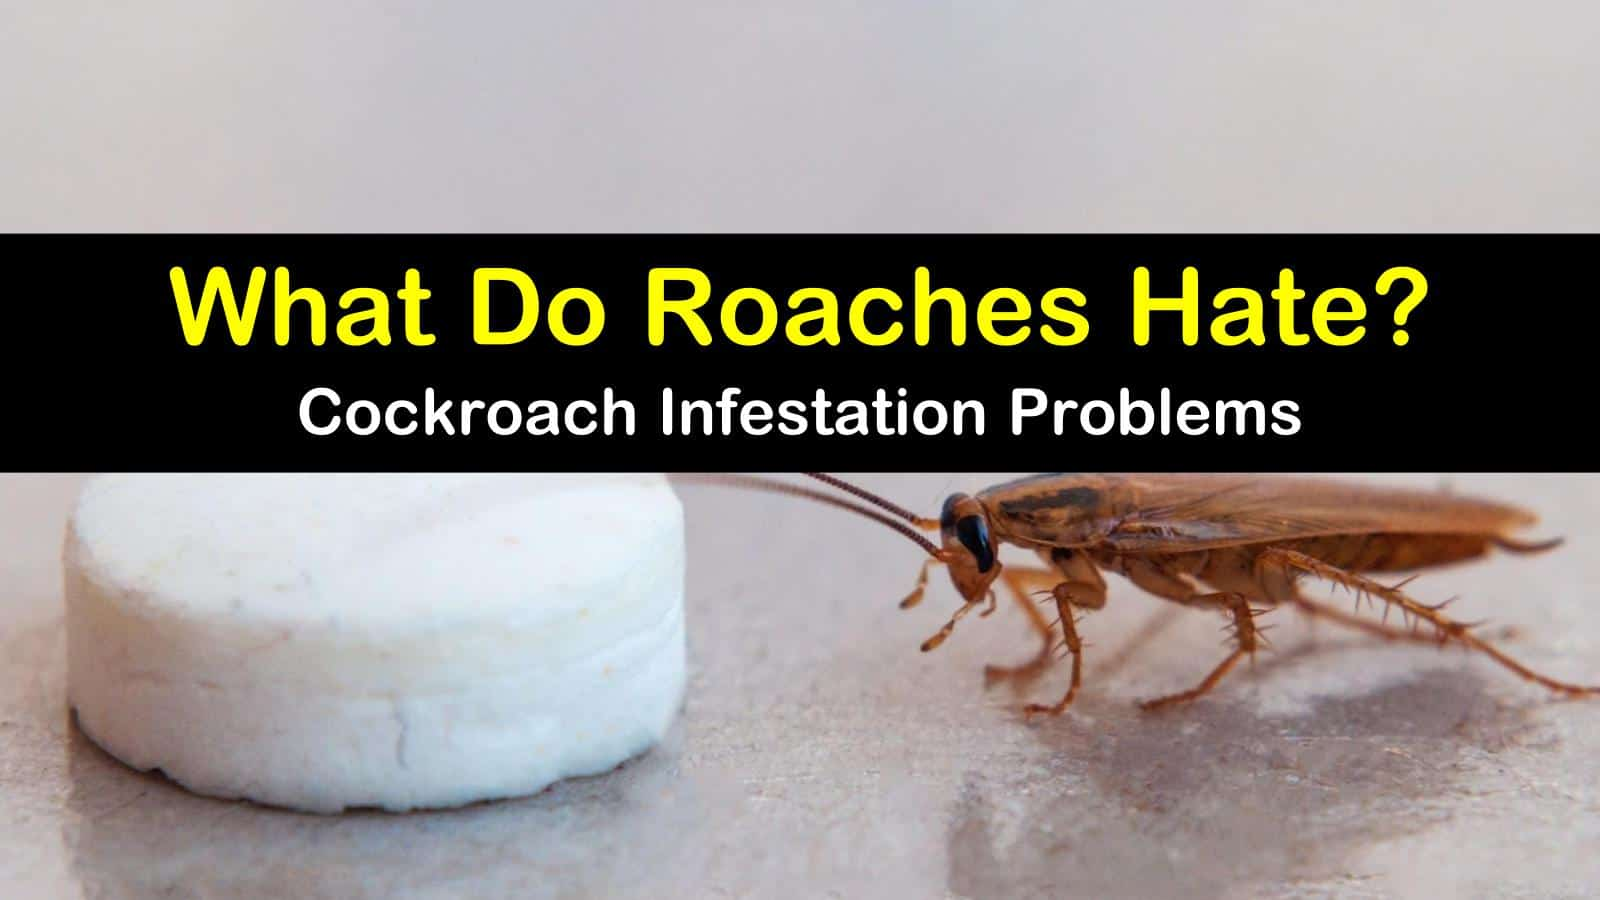 6 Simple Things Roaches Hate